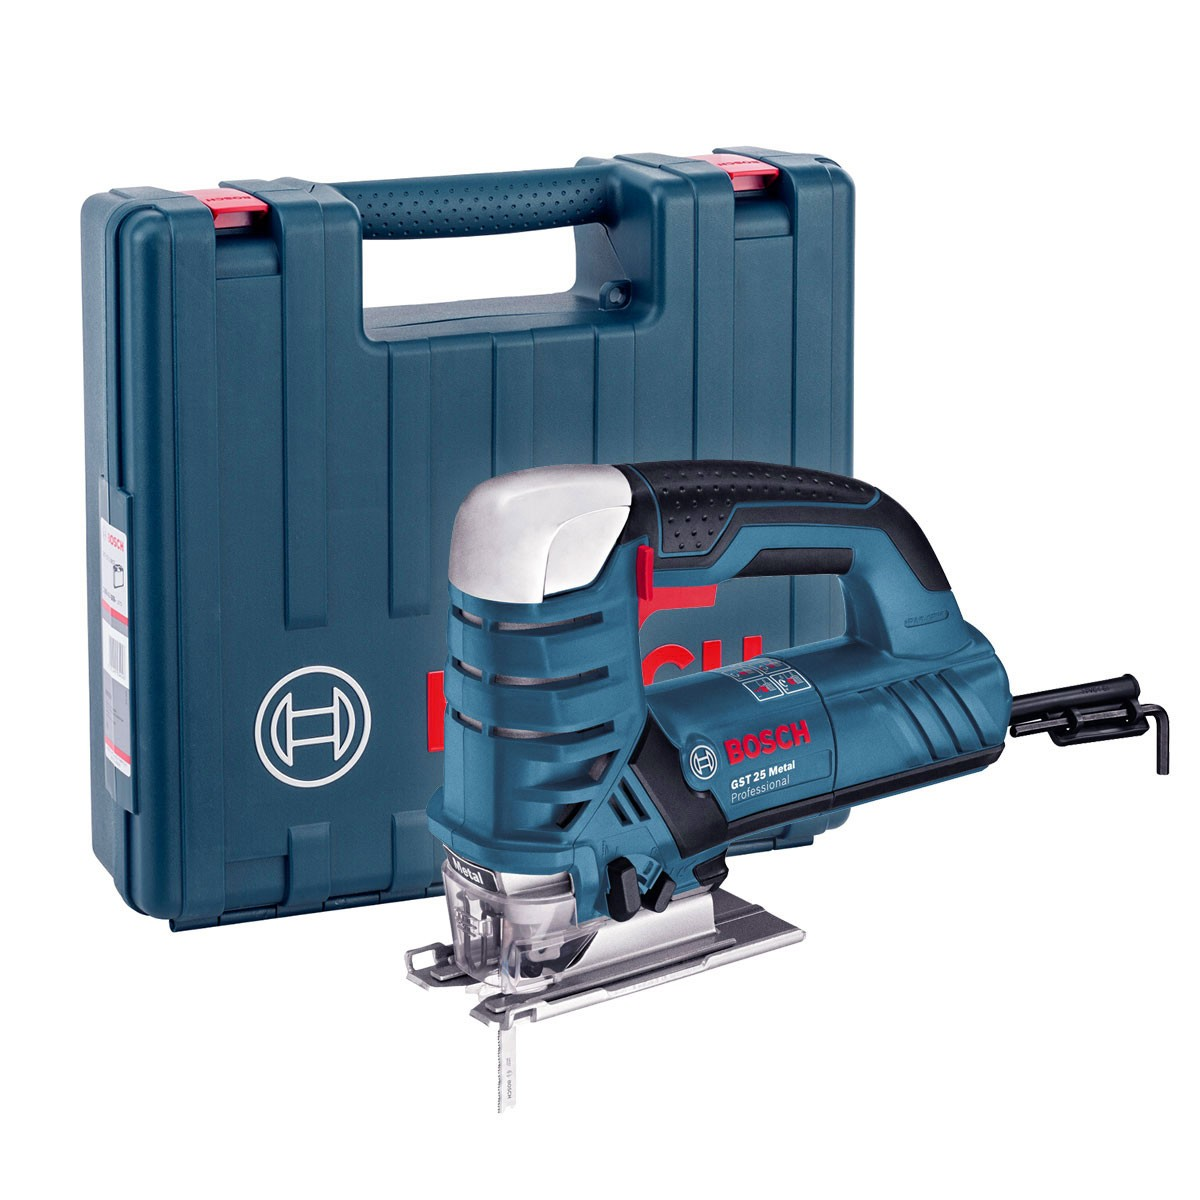 Bosch GST 25 M Metal Cutting Jigsaw inc 15 Blades in Carry Case